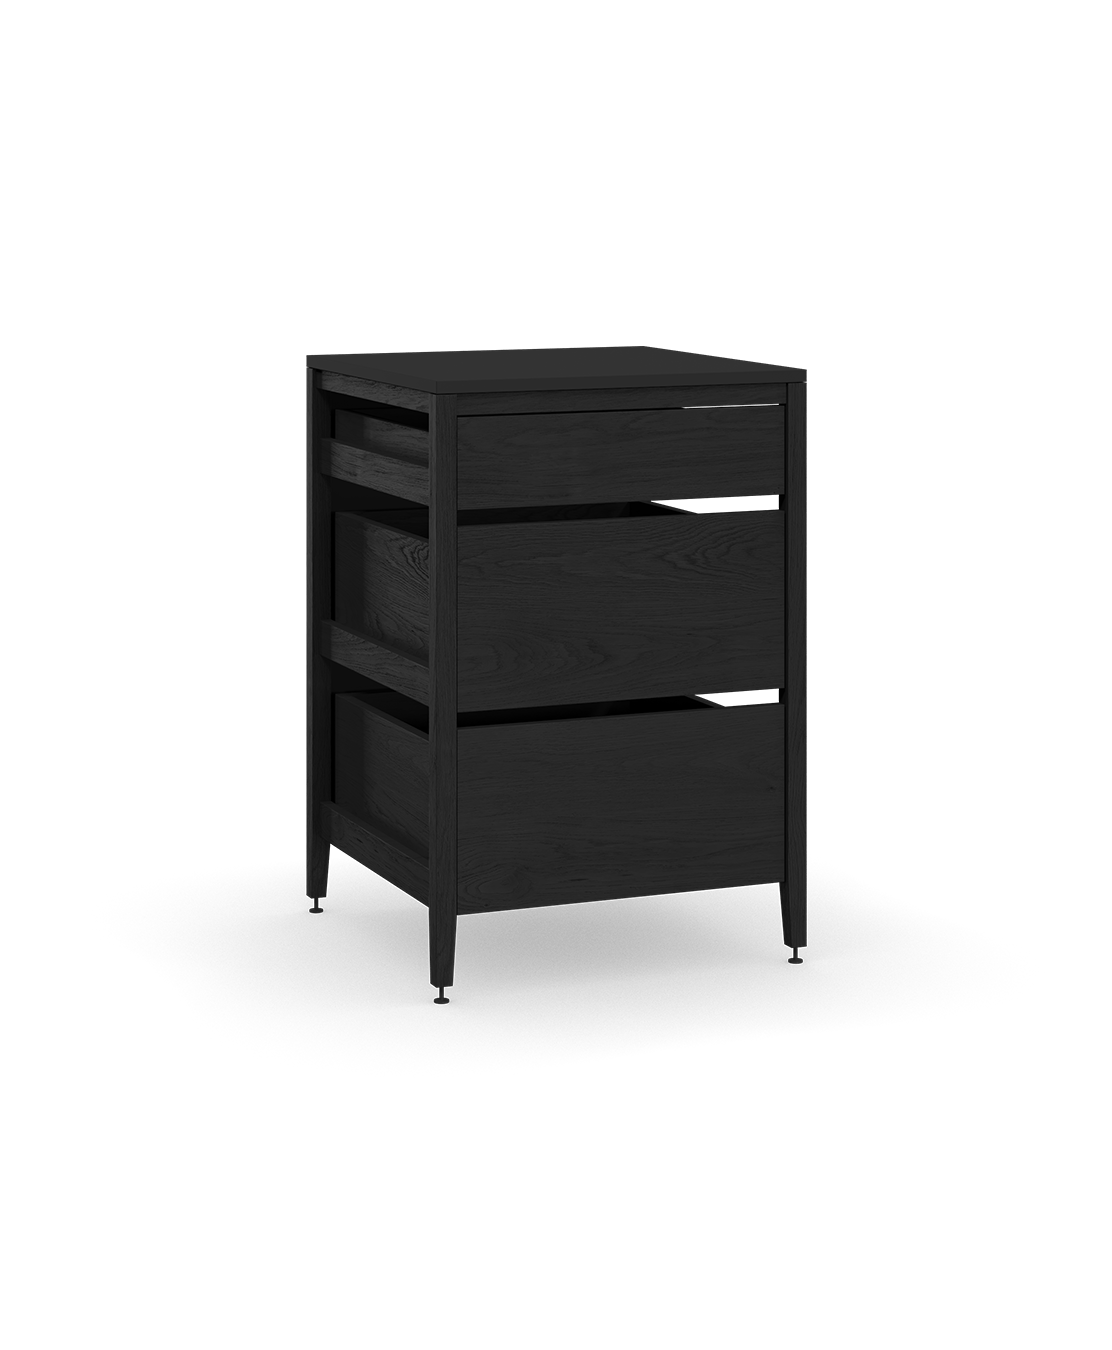 coquo radix midnight black stained oak solid wood modular 3 drawers base kitchen cabinet 27 inch C1-C-27TB-3002-BK